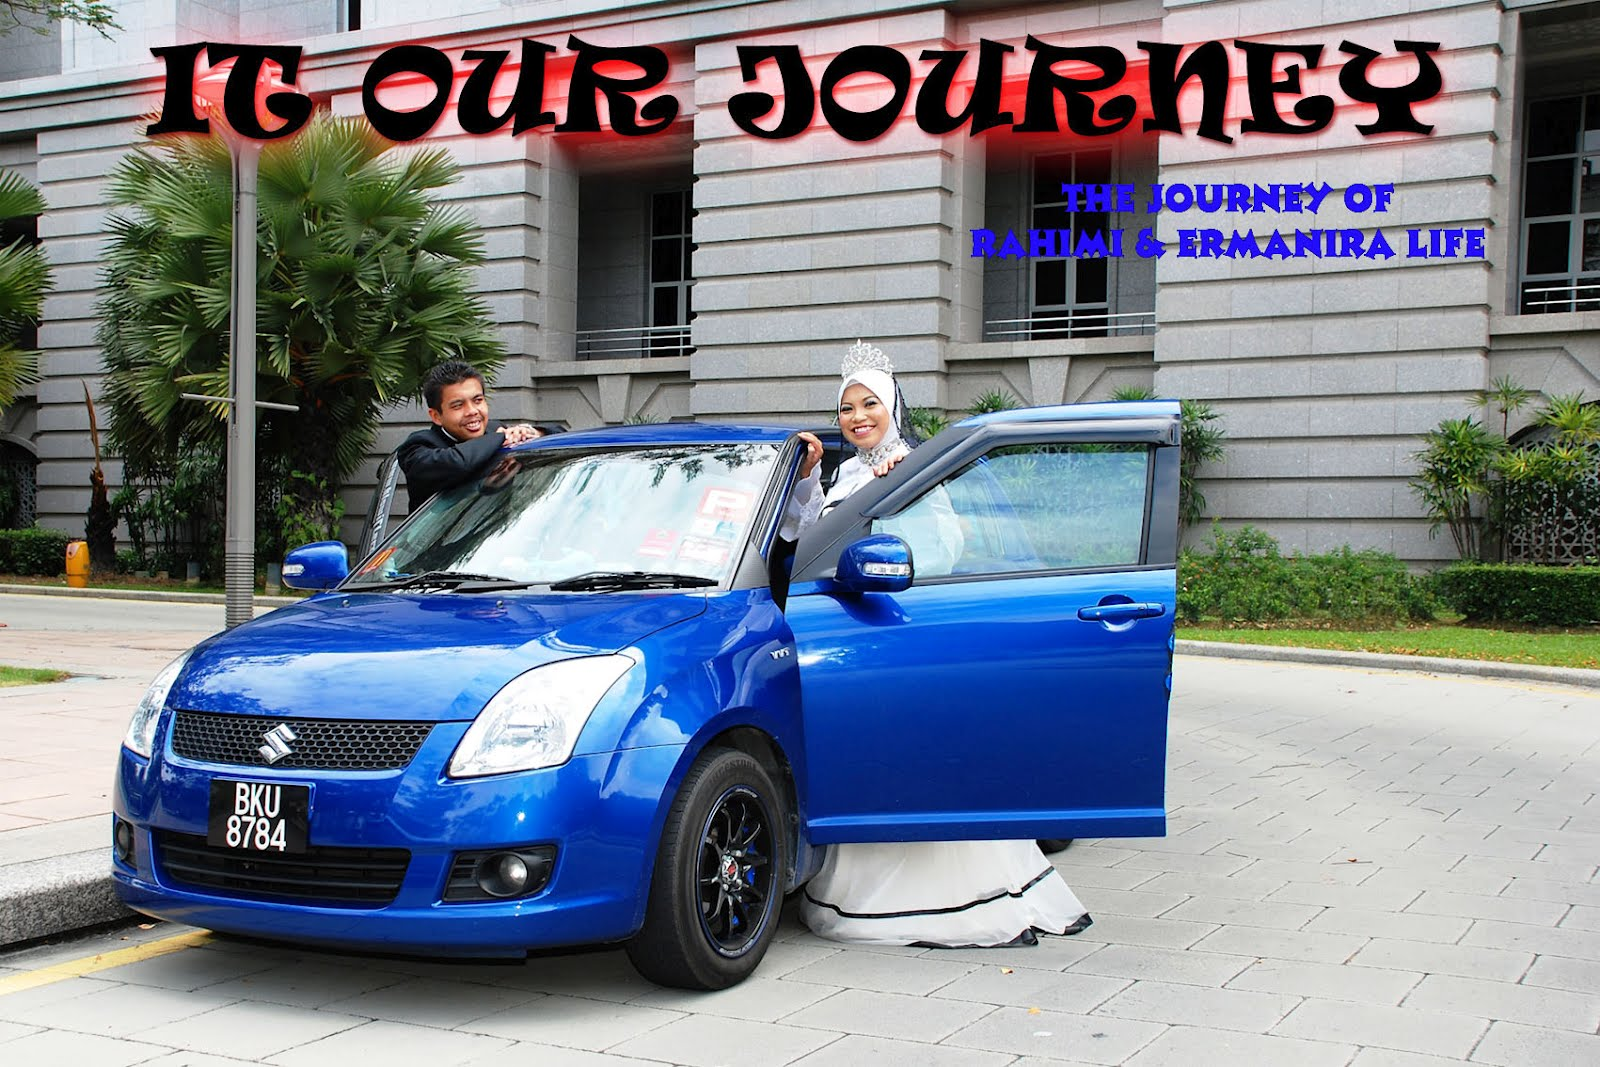 It Our Journey